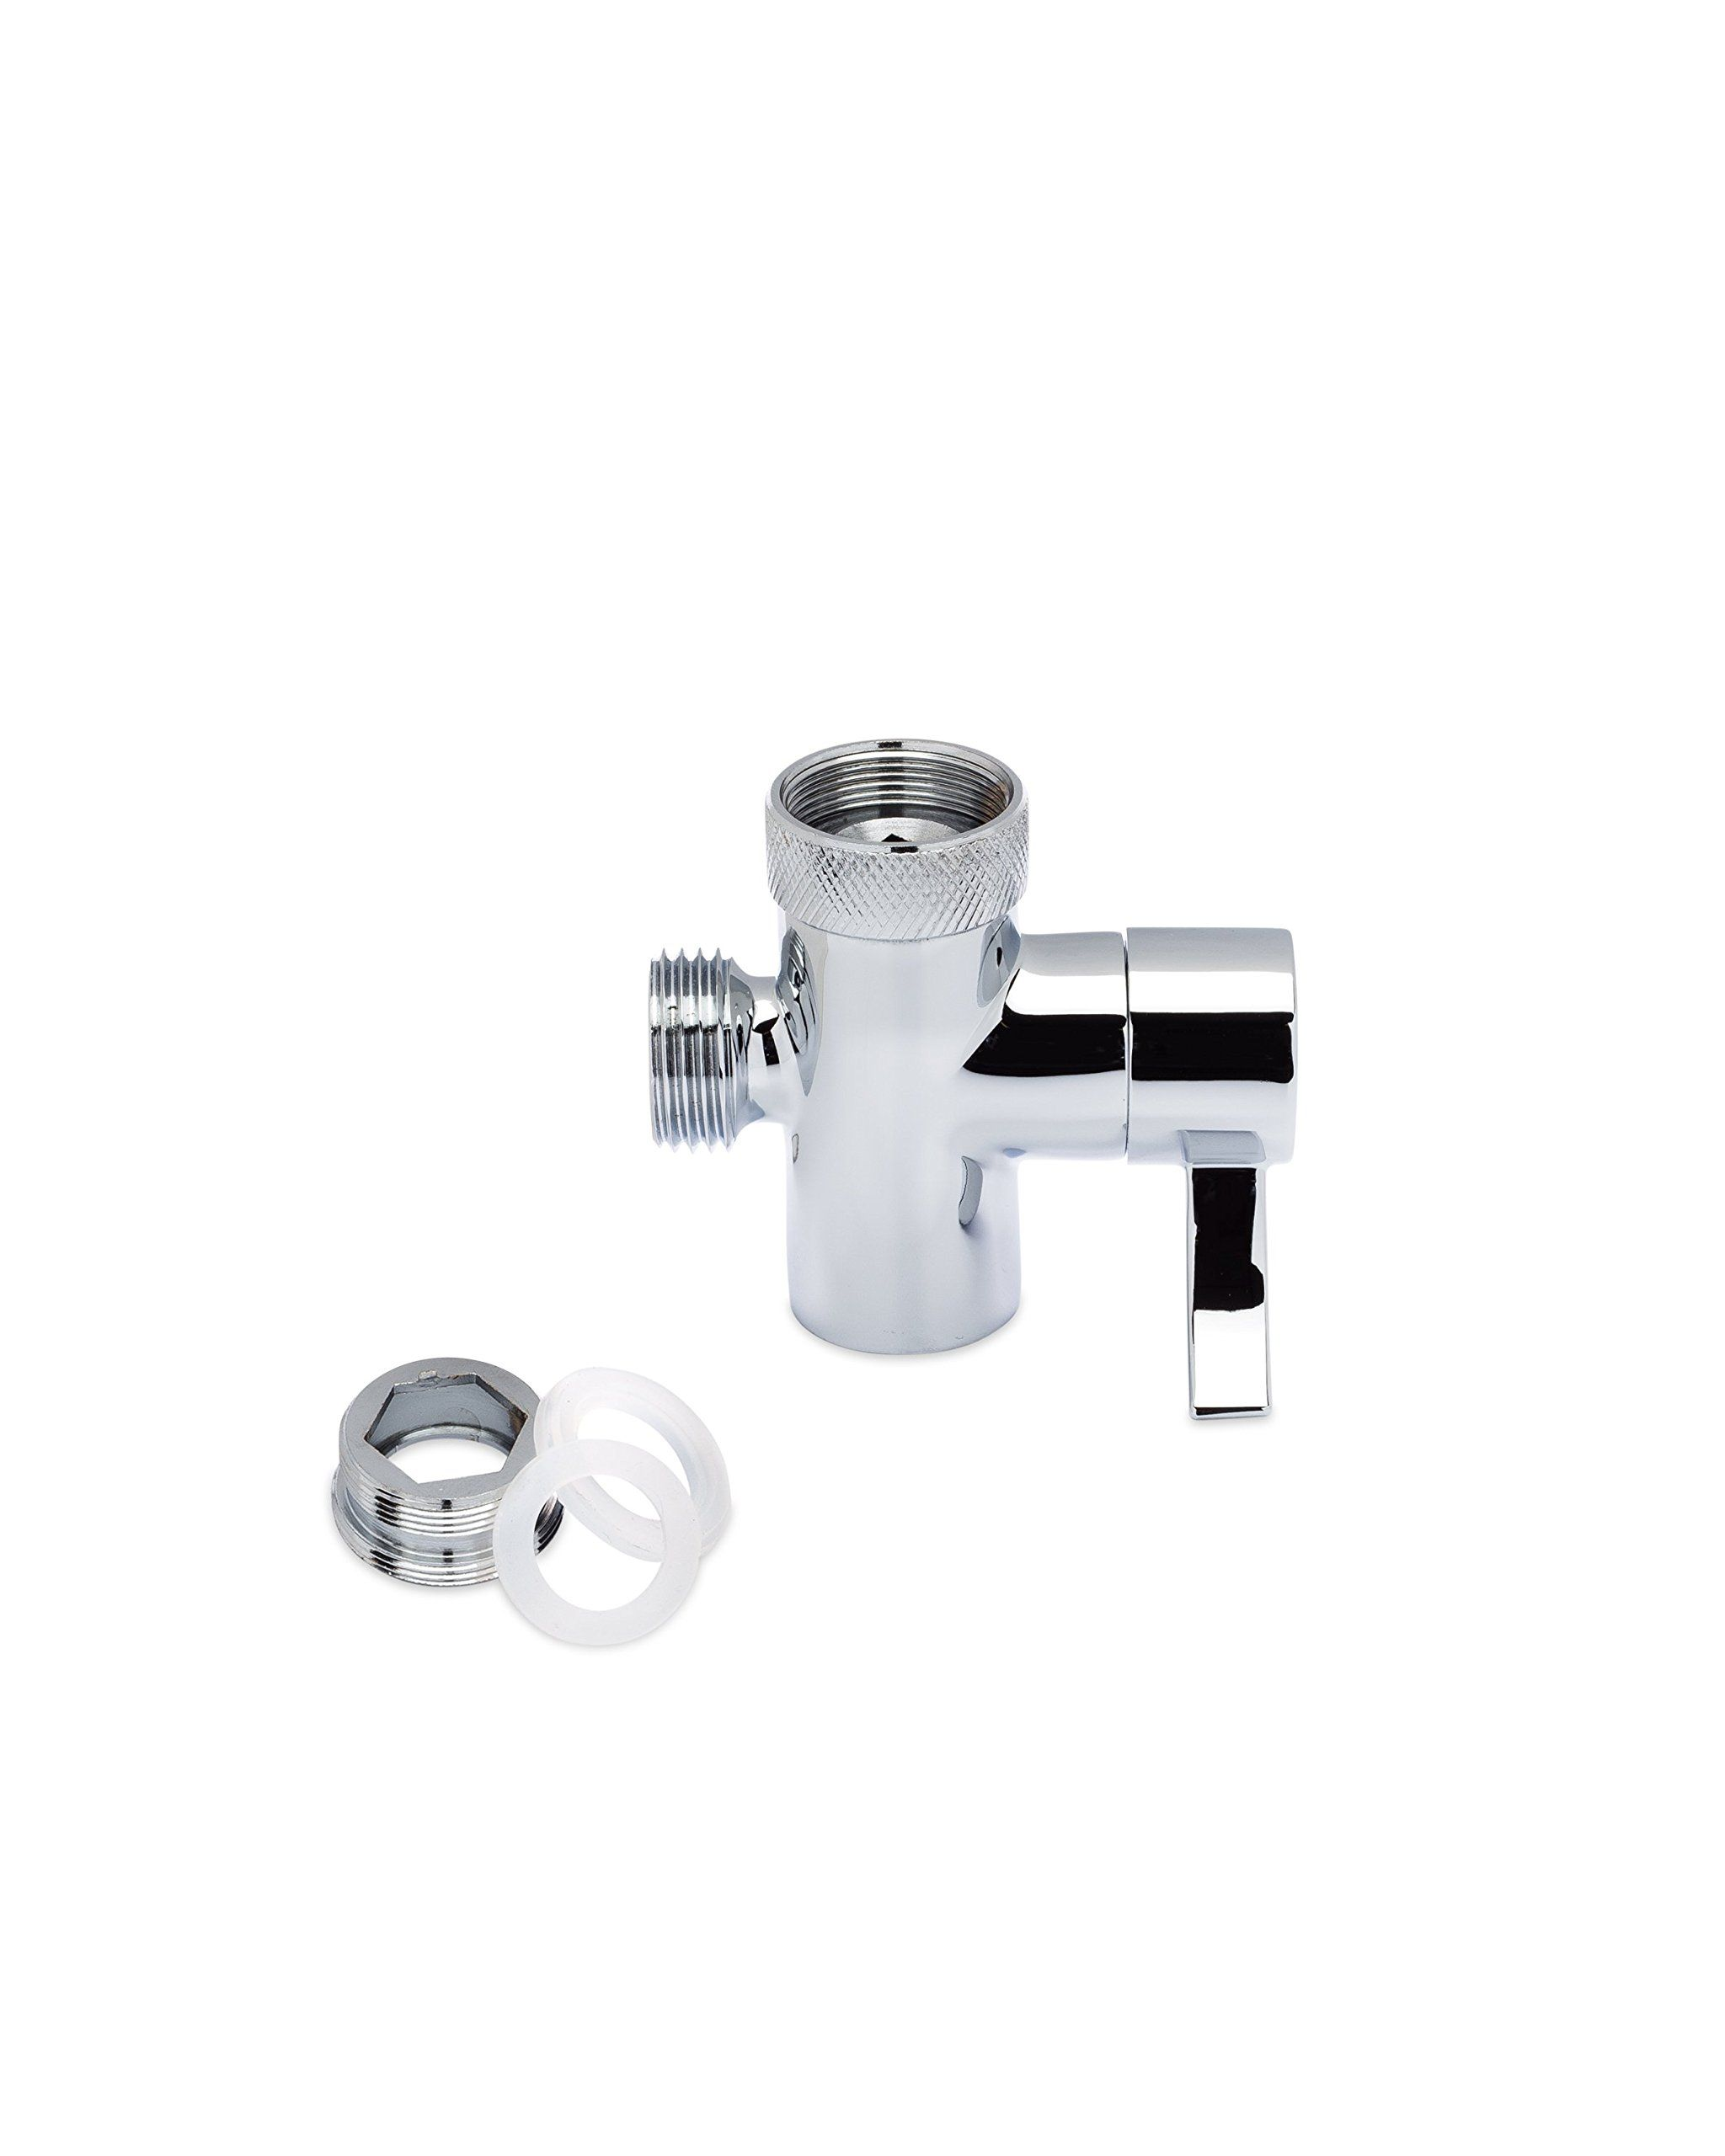 SmarterFresh Faucet Diverter Valve With Aerator and Male Threaded